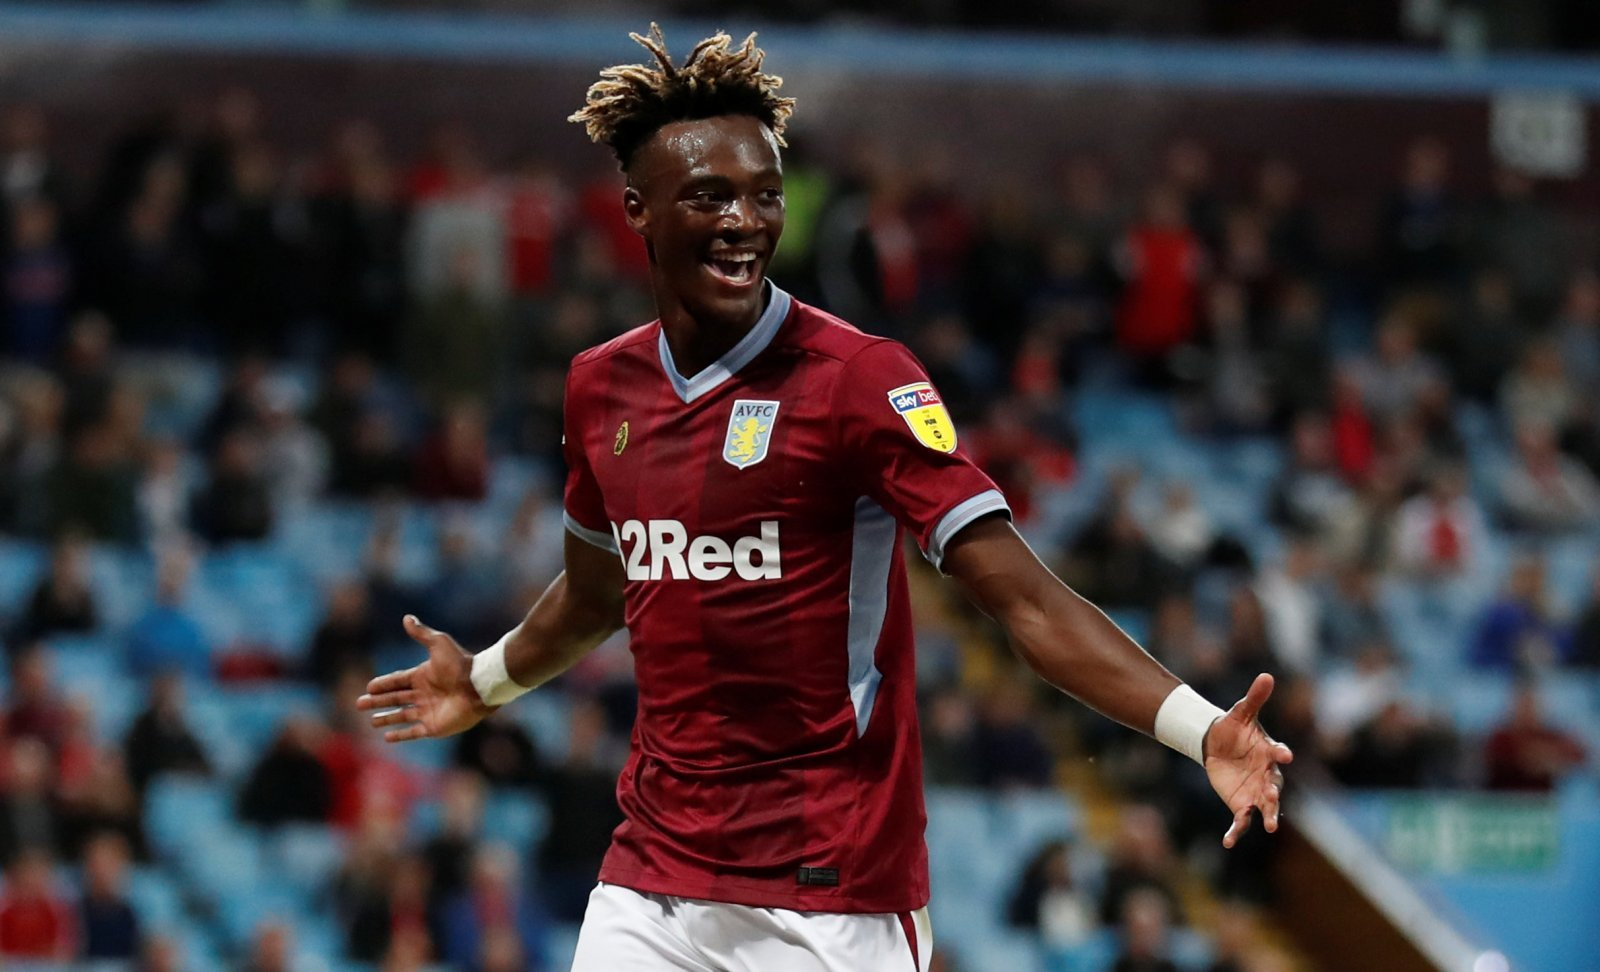 Chelsea: Frank Lampard could make Tammy Abraham his lead striker